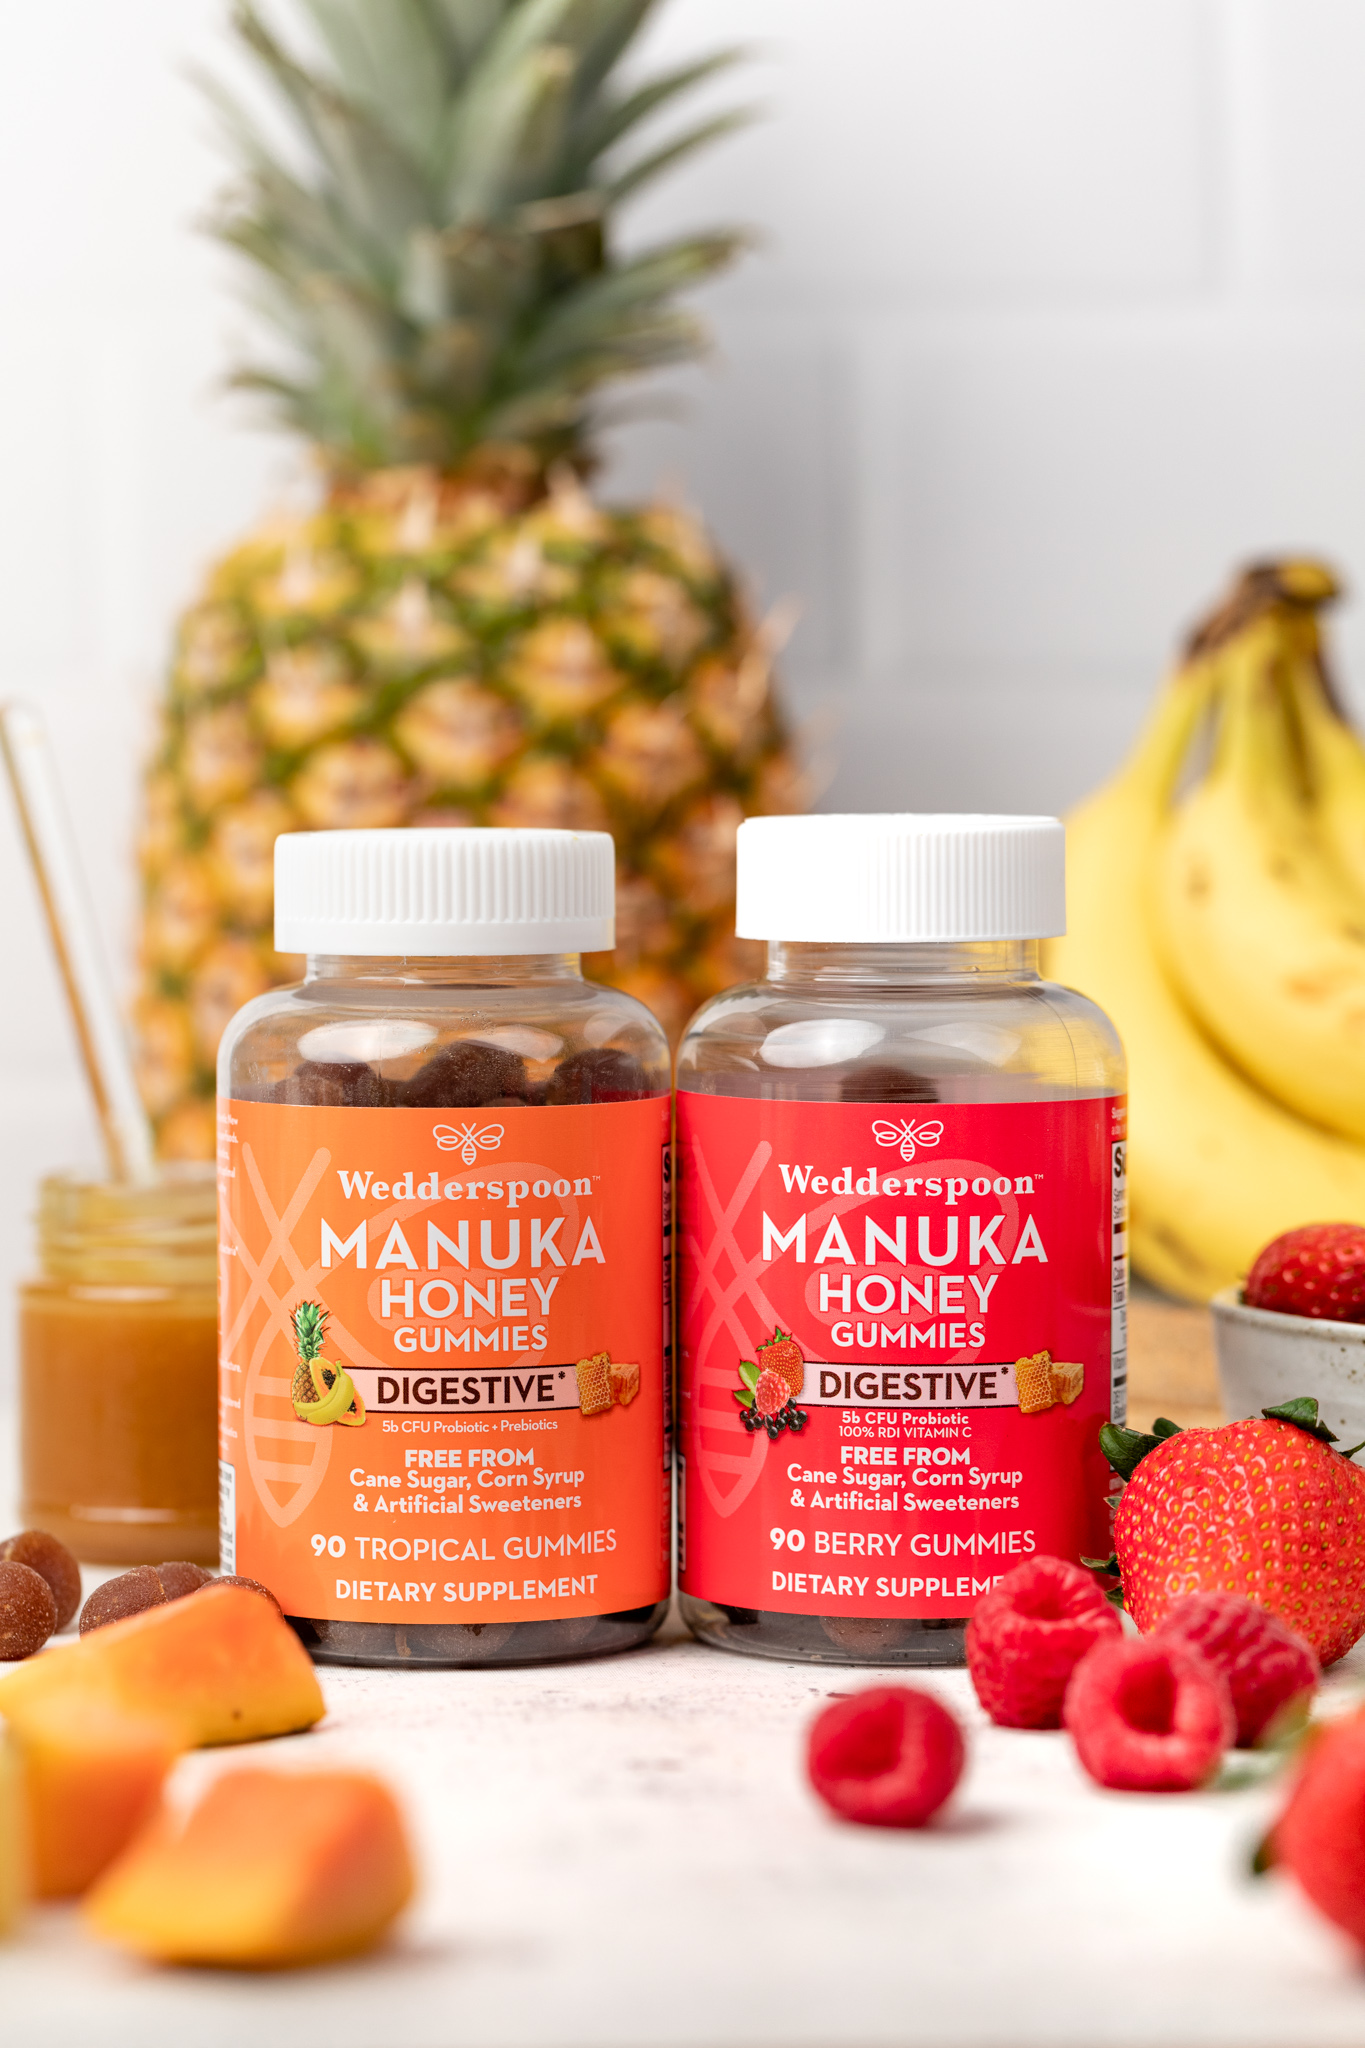 Monuka Honey digestive gummies